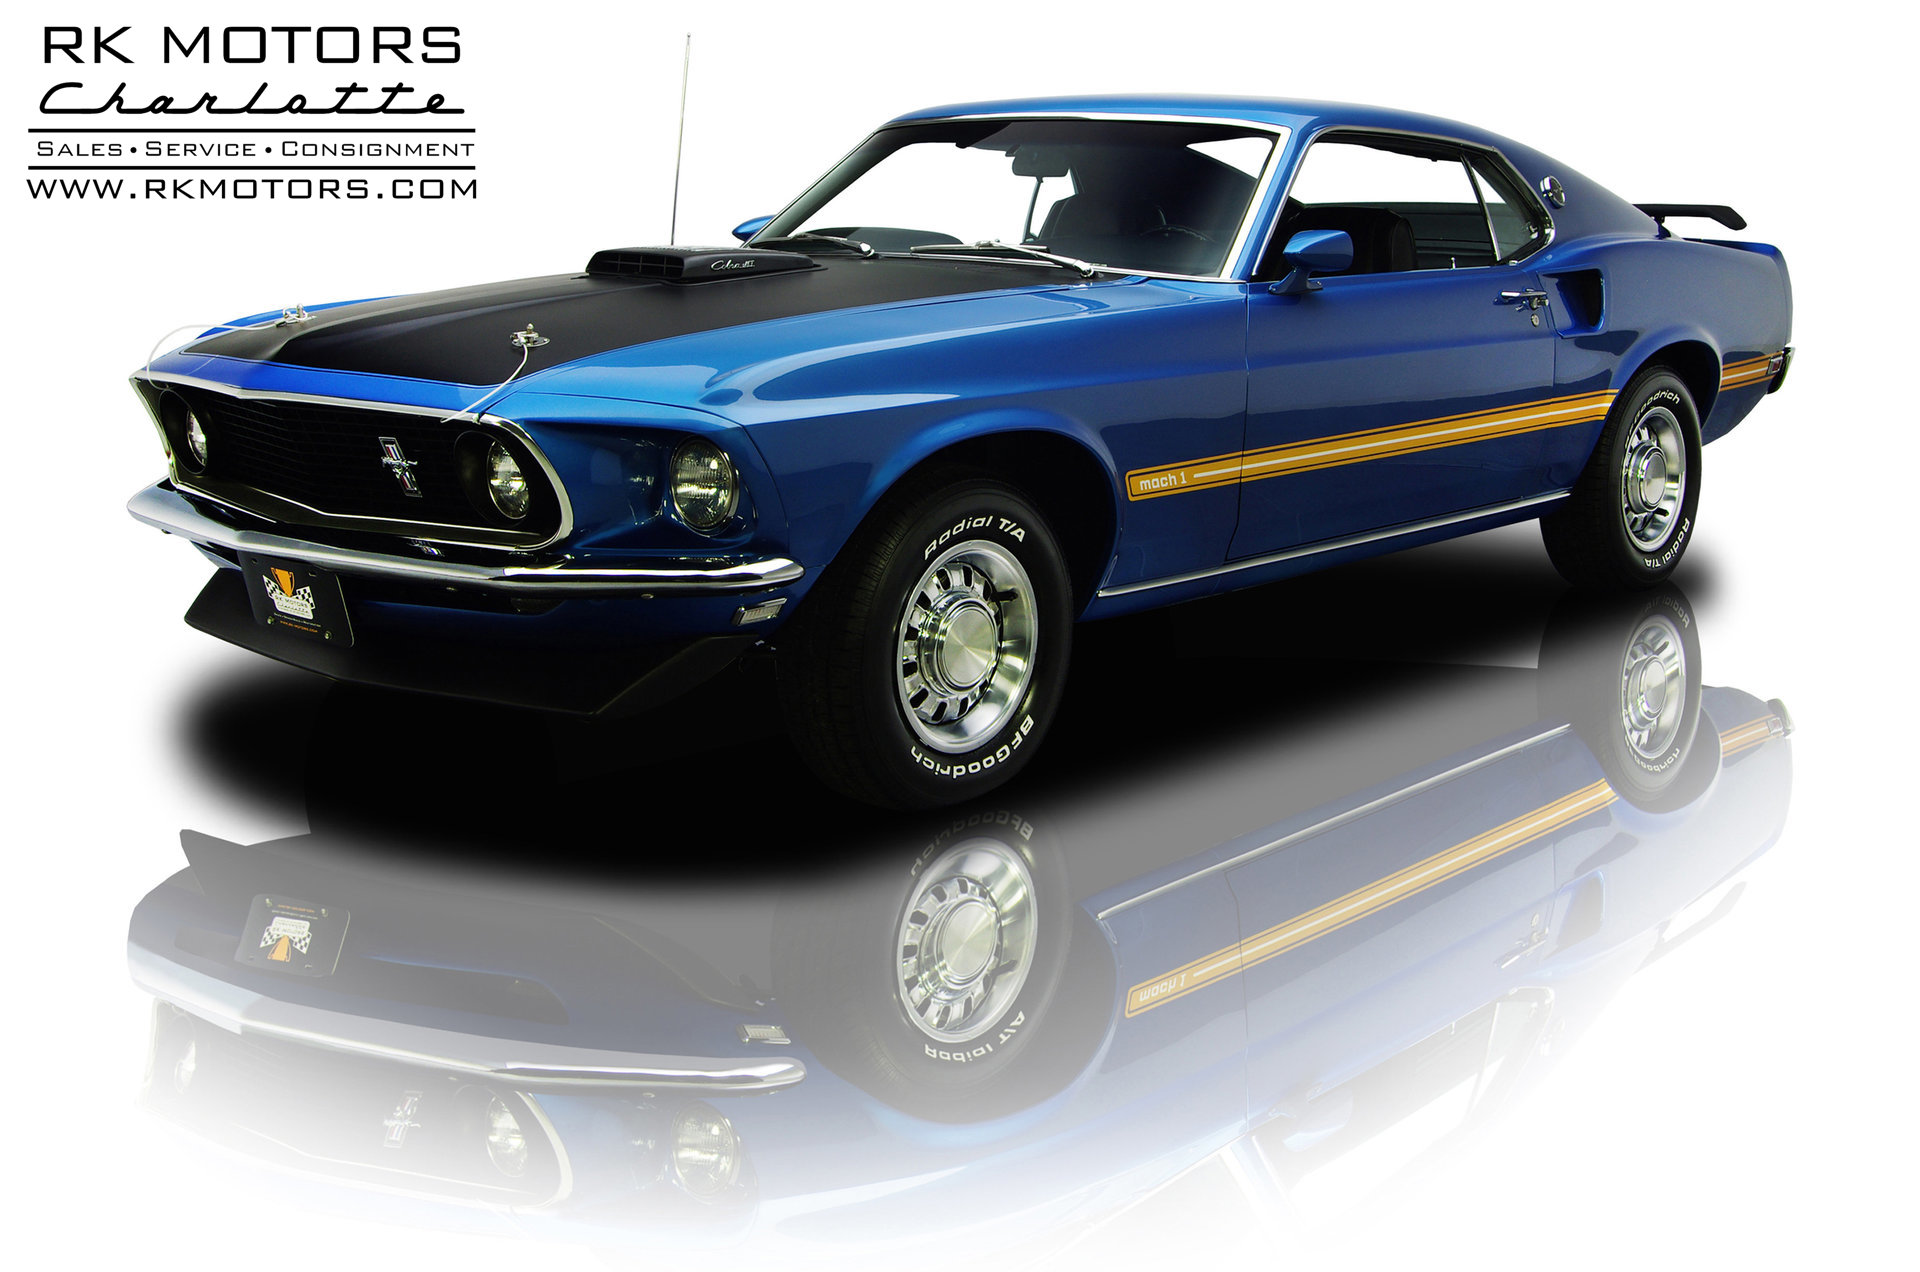 132628 1969 Ford Mustang Rk Motors Classic And Performance Cars Shelby Mach 1 For Sale